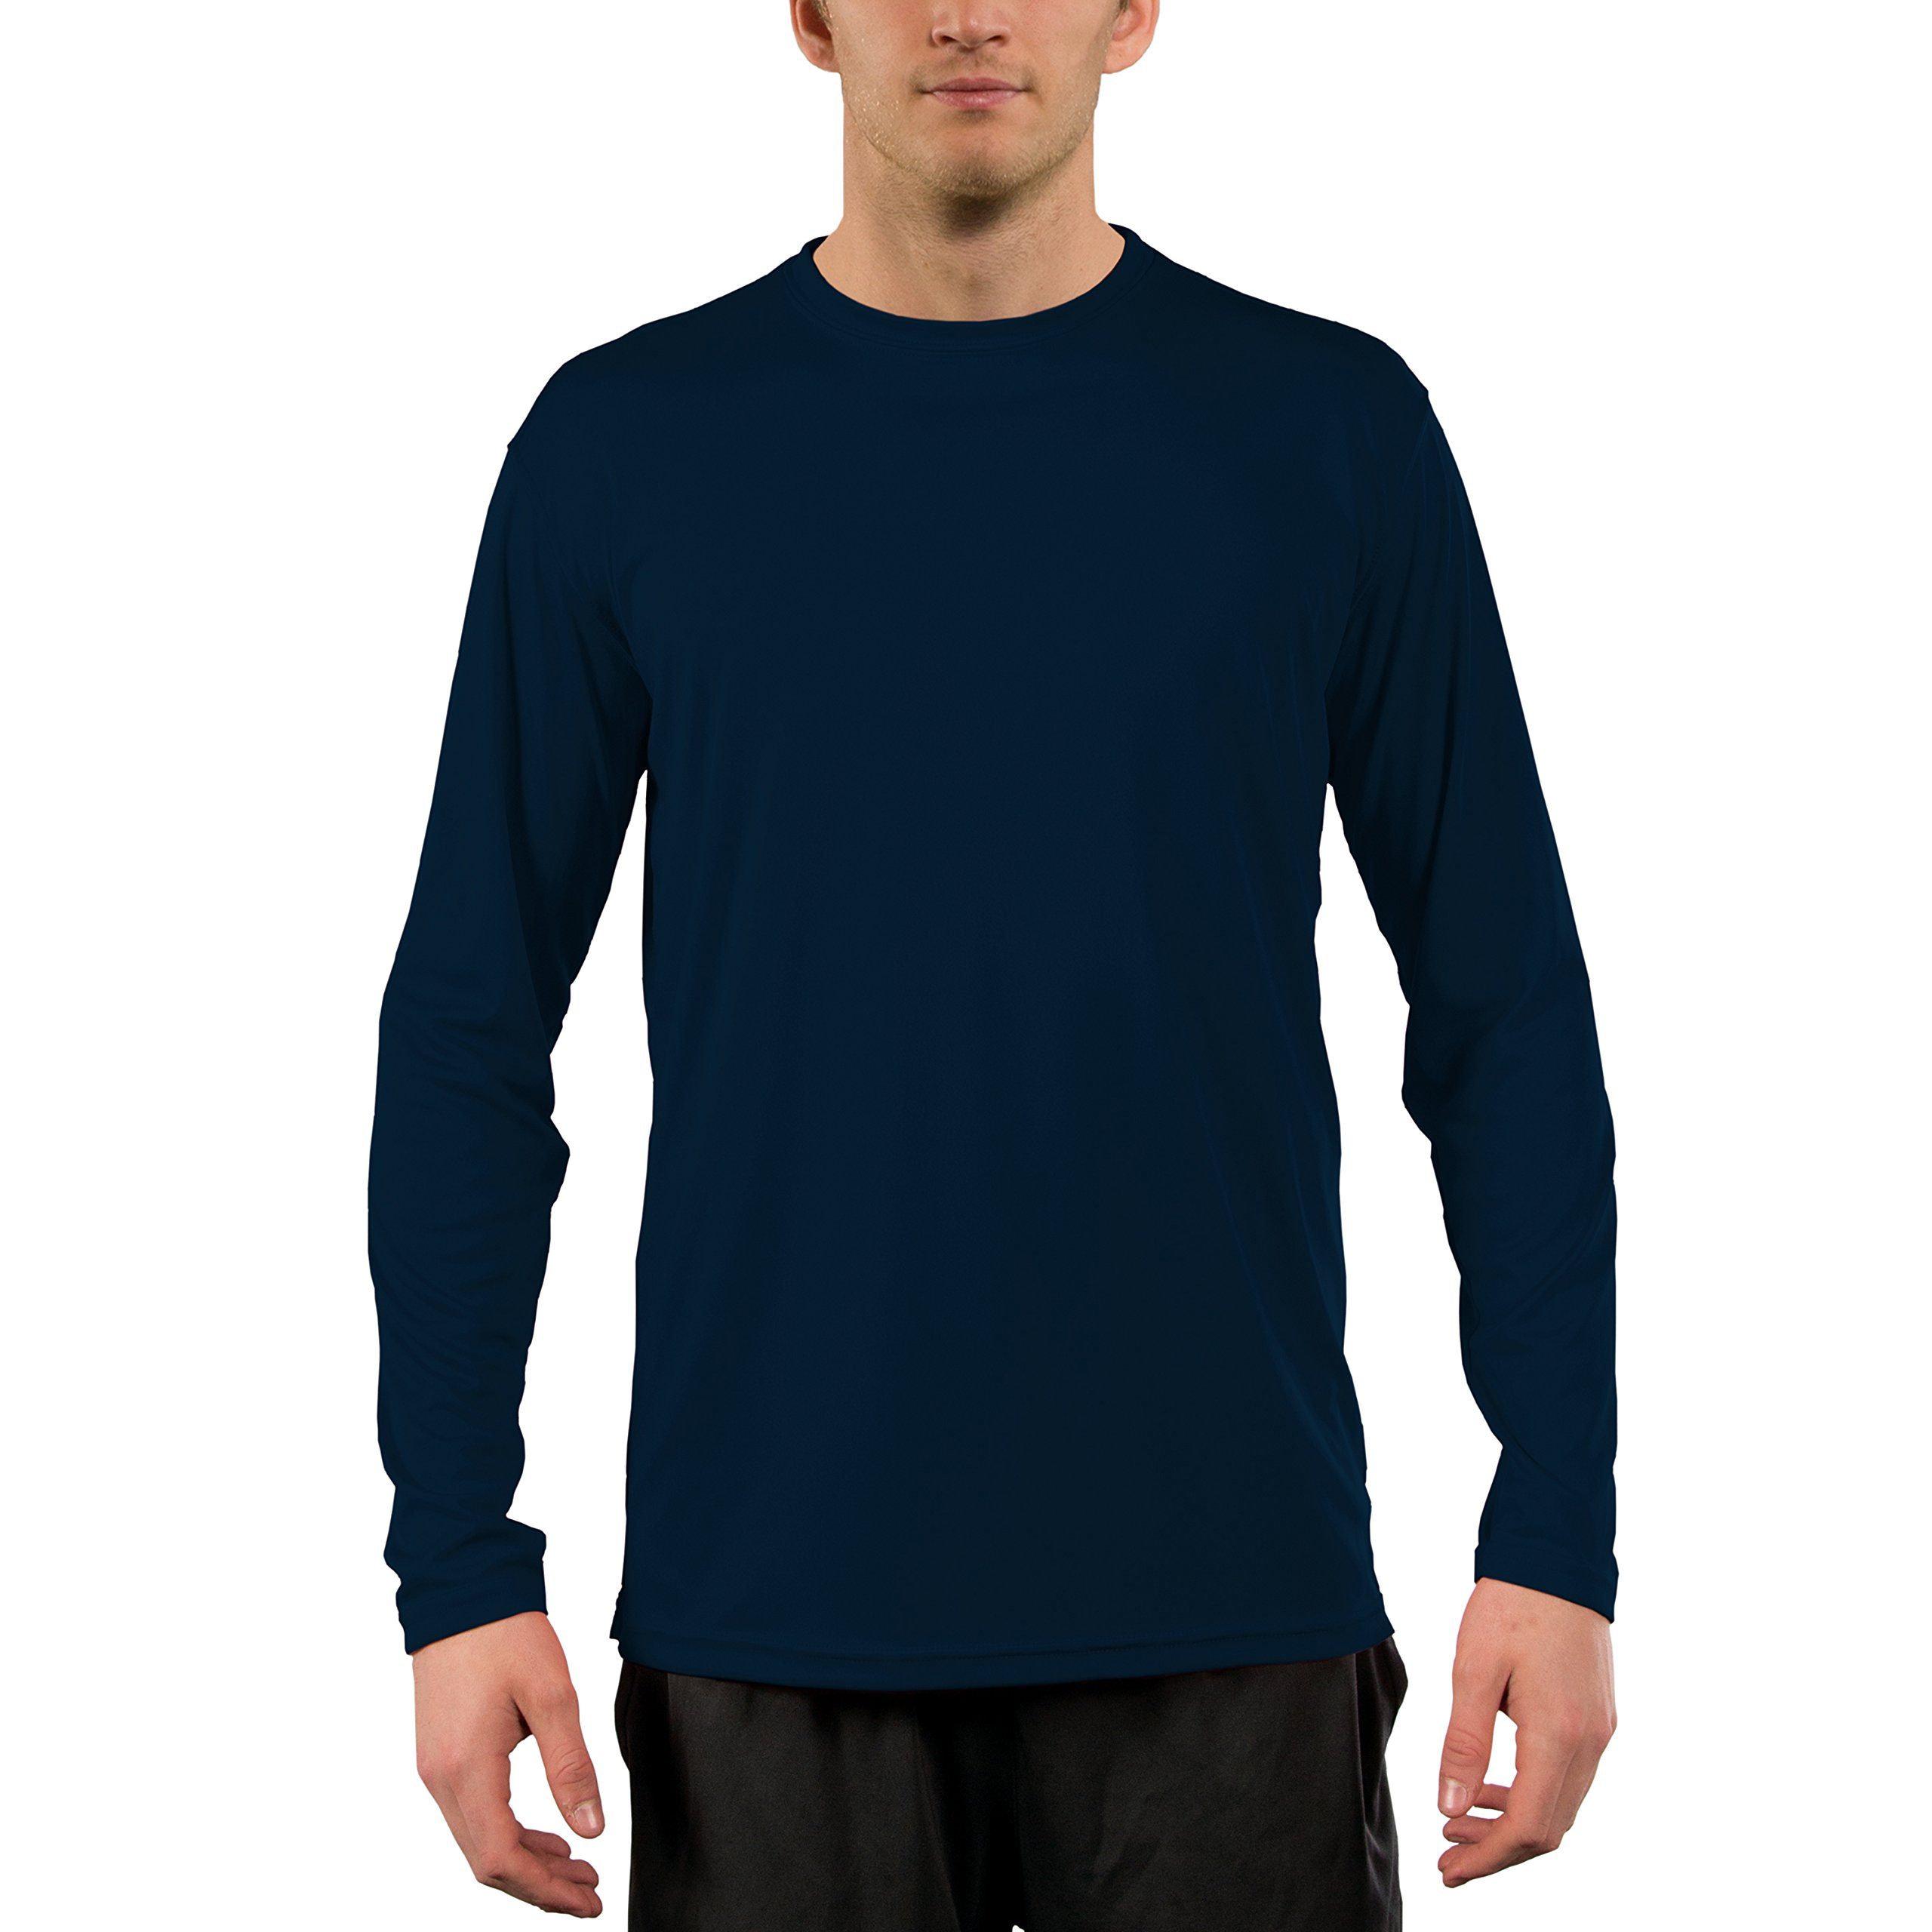 Vapor Apparel Men's UPF 50+ Sun Protection Performance Long Sleeve T-Shirt Large Navy